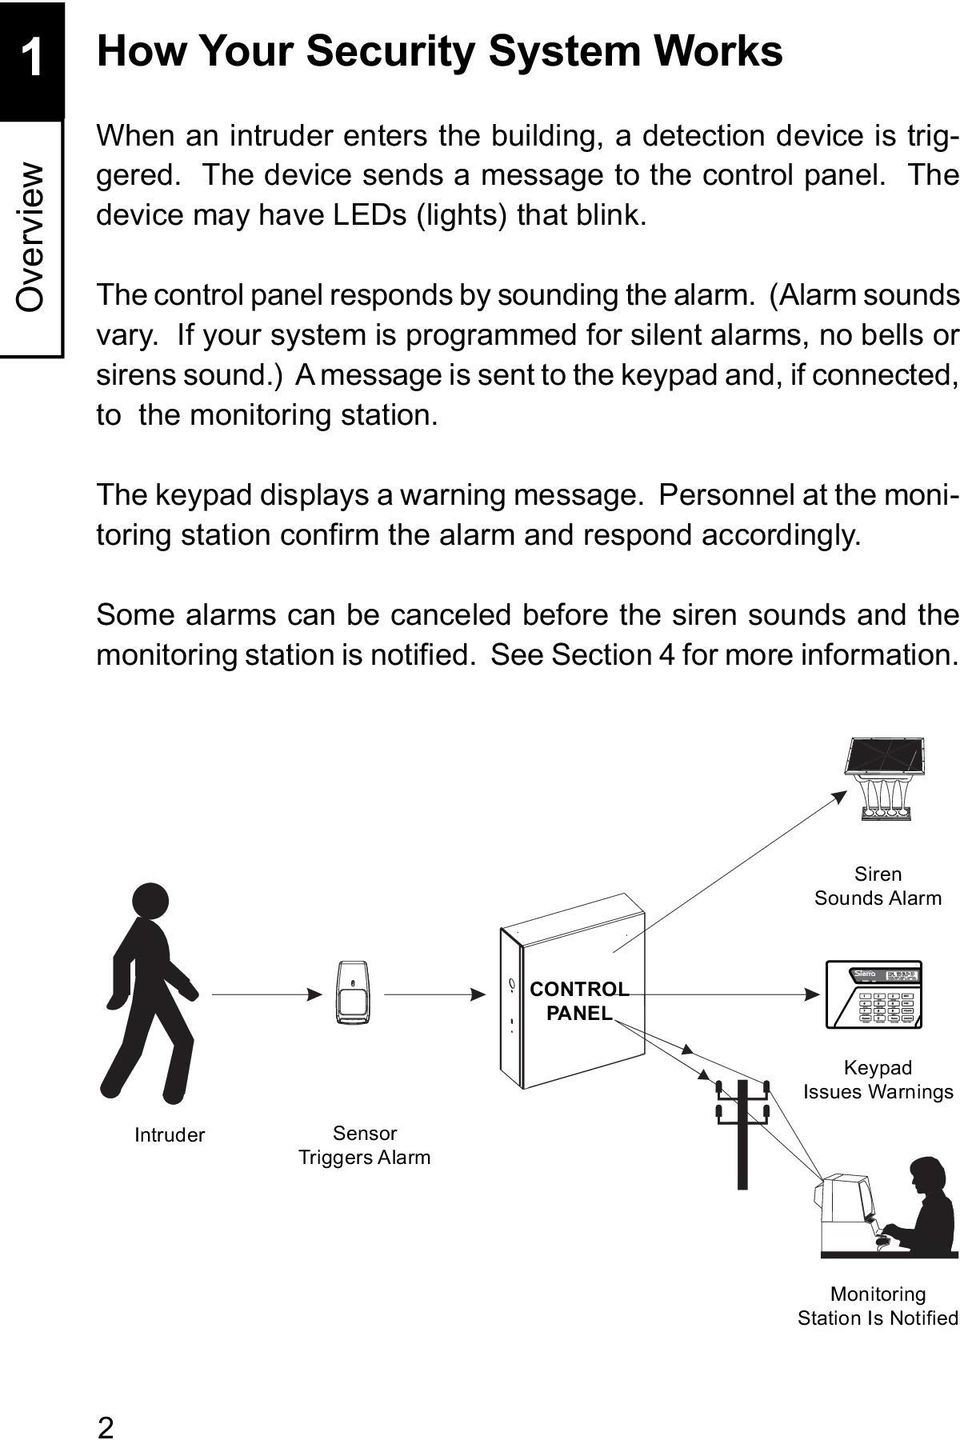 ) A message is sent to the keypad and, if connected, to the monitoring station. The keypad displays a warning message. Personnel at the monitoring station confirm the alarm and respond accordingly.